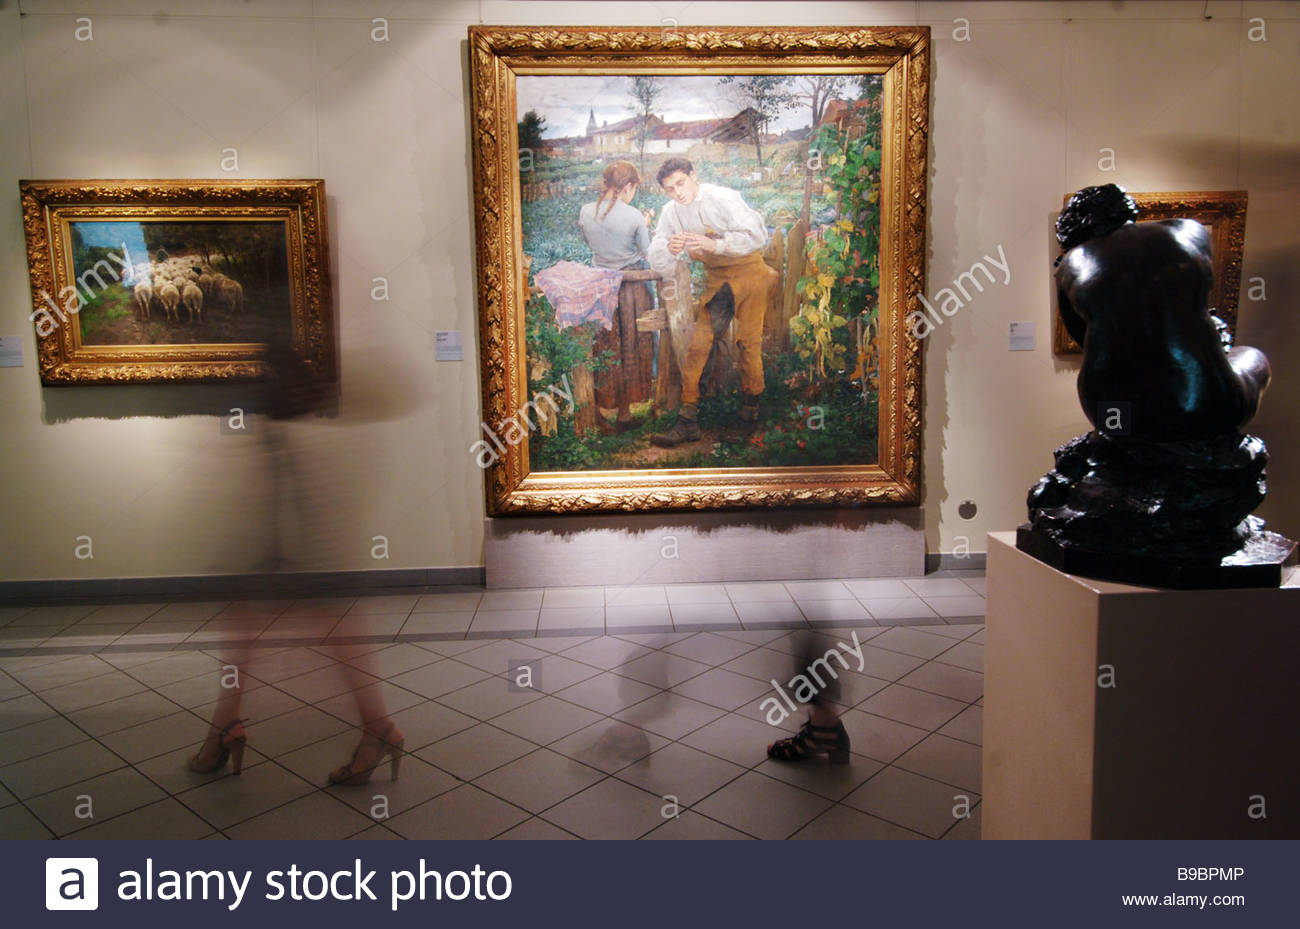 19th & 20th Century Art Gallery Moscow, A 19th and 20th century European and American art gallery has ...